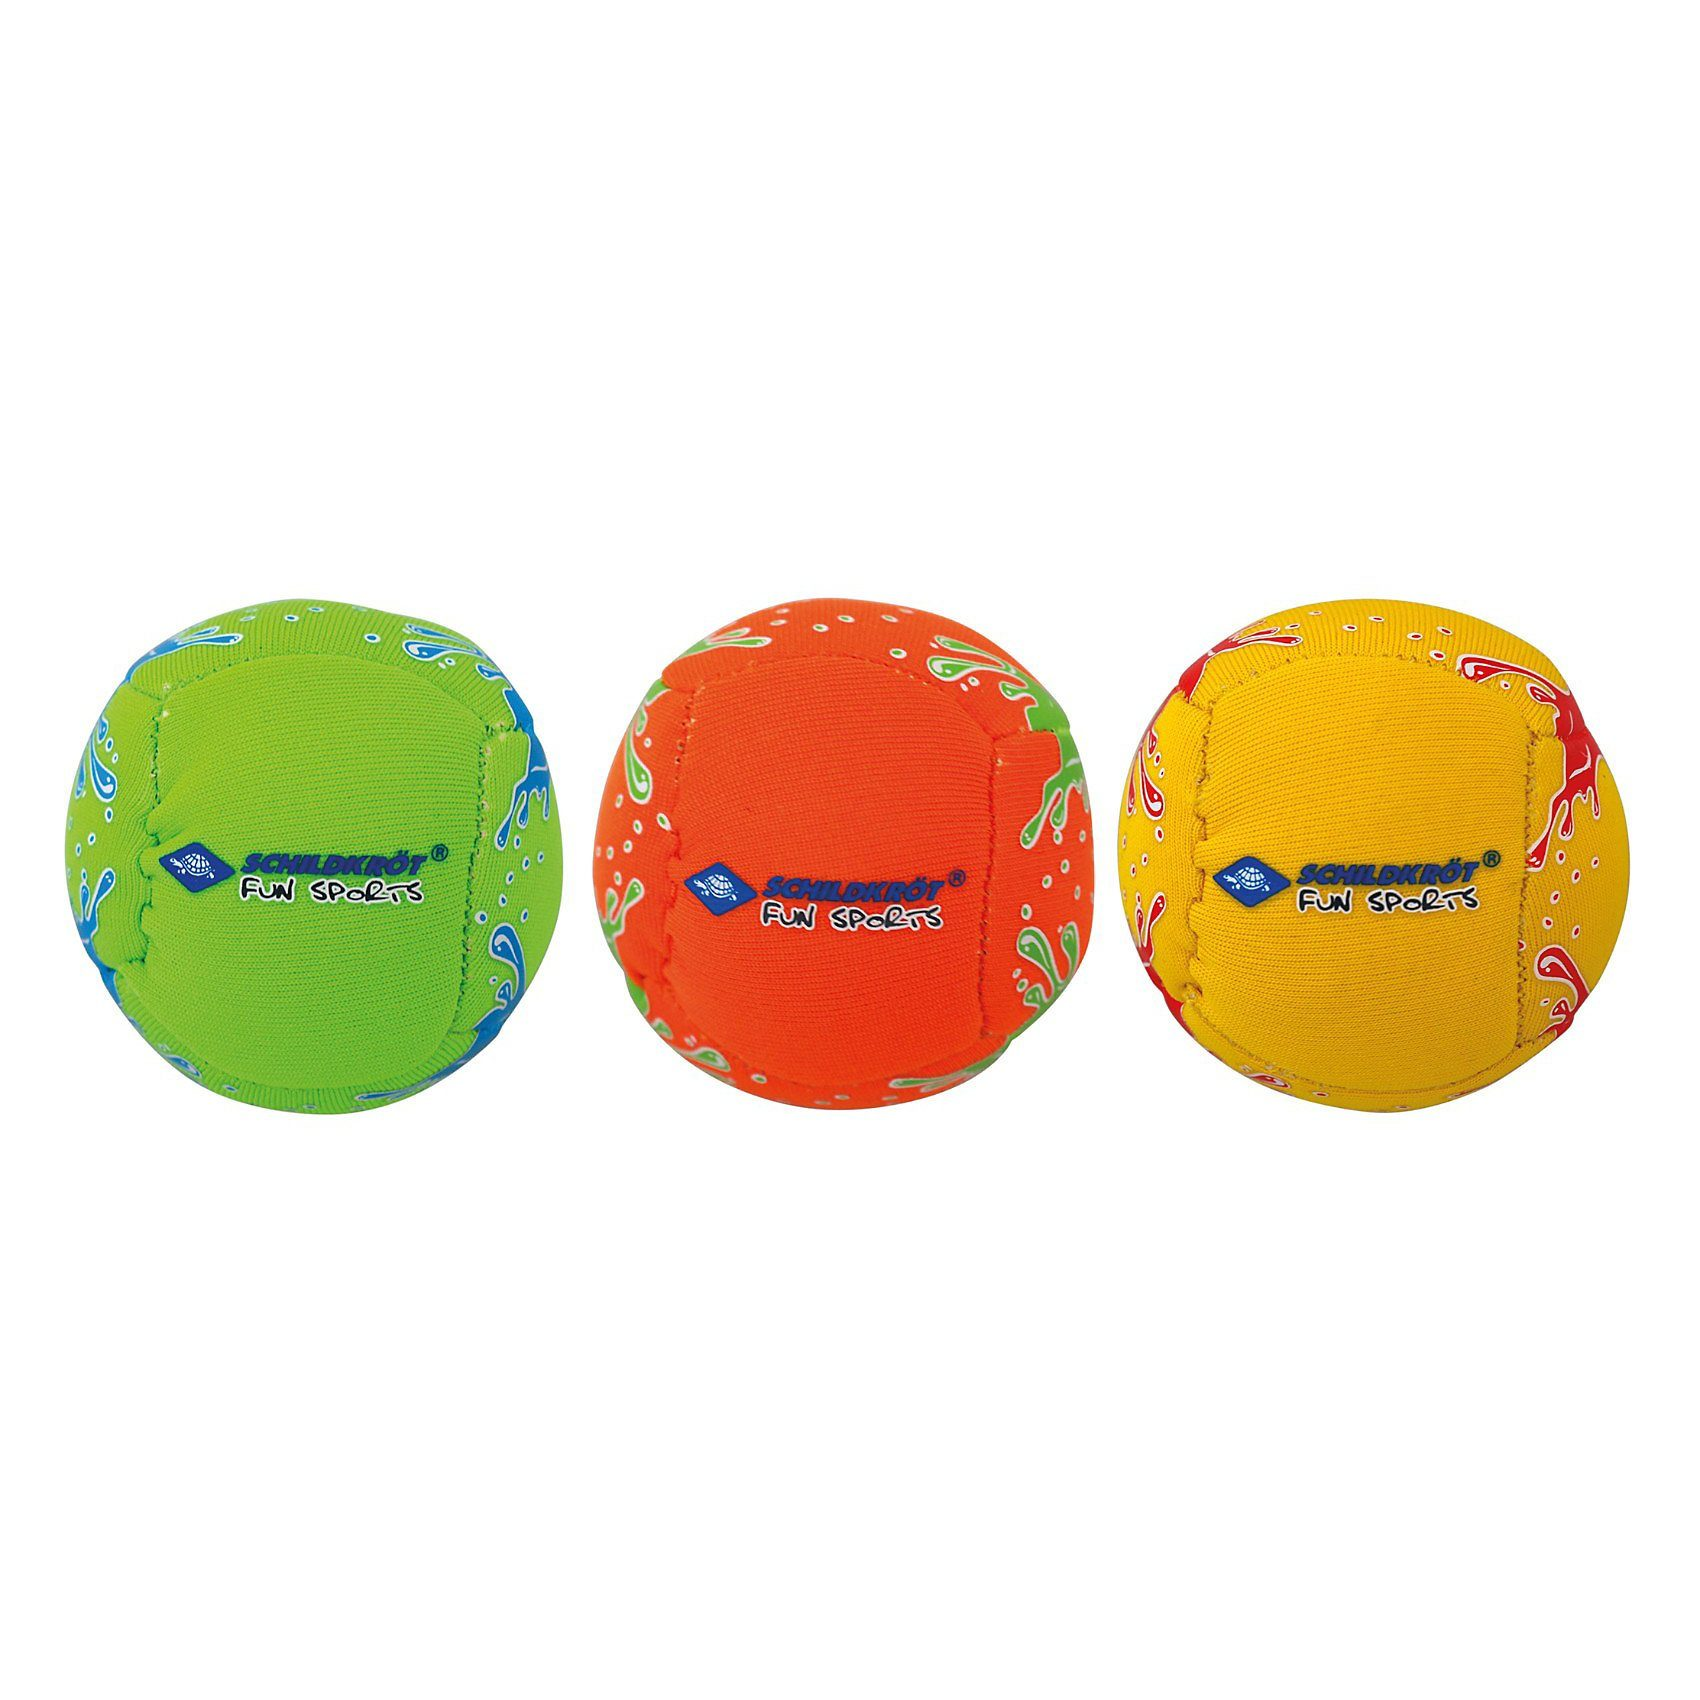 Schildkröt Funsports Neoprene Mini-Fun-Balls